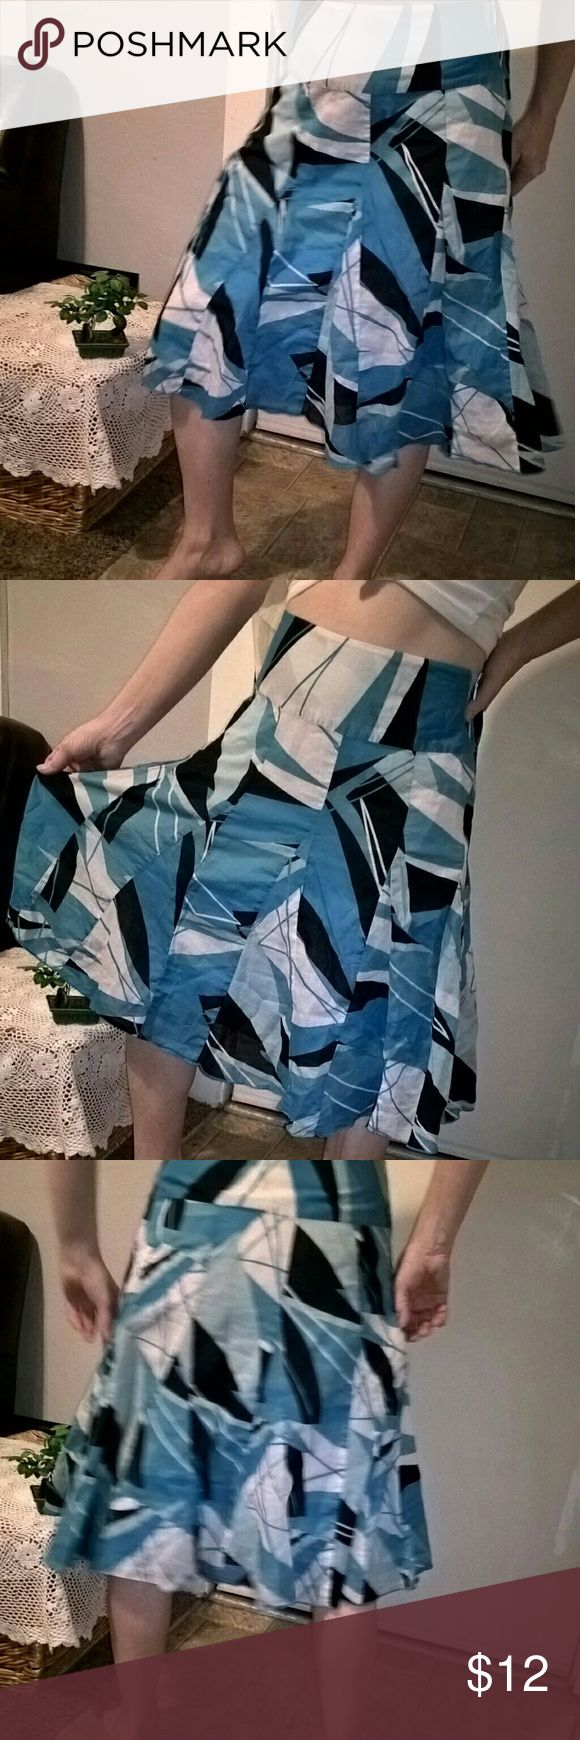 apt.9  bold blue print skirt Pleated blue white and black skirt 100% cotton. Tight around the waist and flares out. Zips up the side and has a white inside thin lining. I am a size 4 and this skirt is tight on me bull Apt.9 Skirts Midi